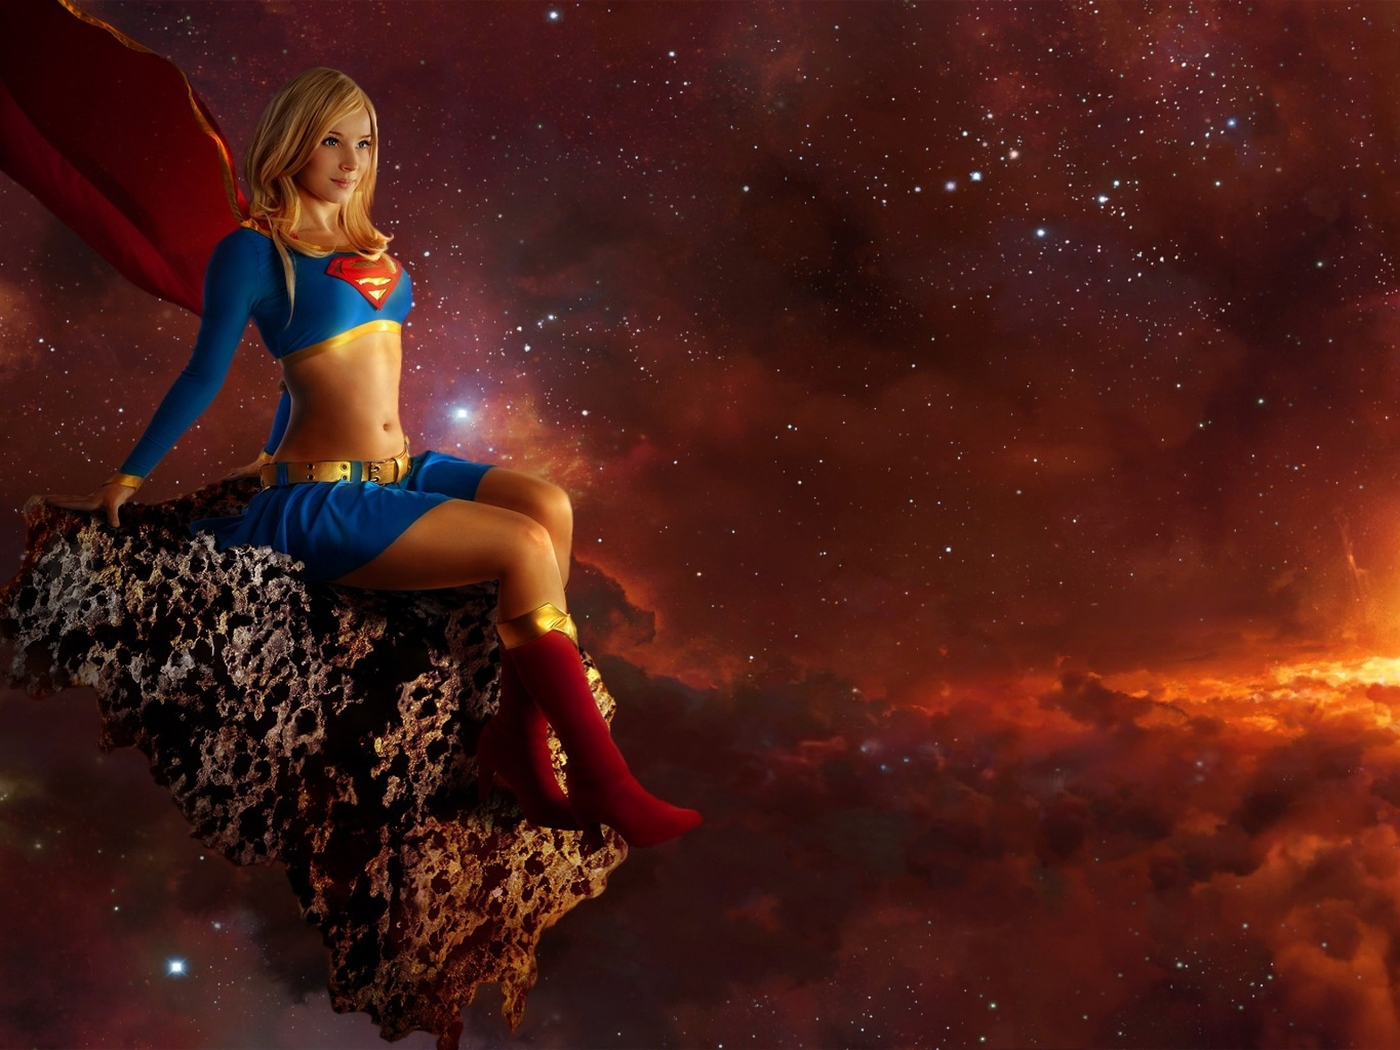 supergirl-hd-do.jpg